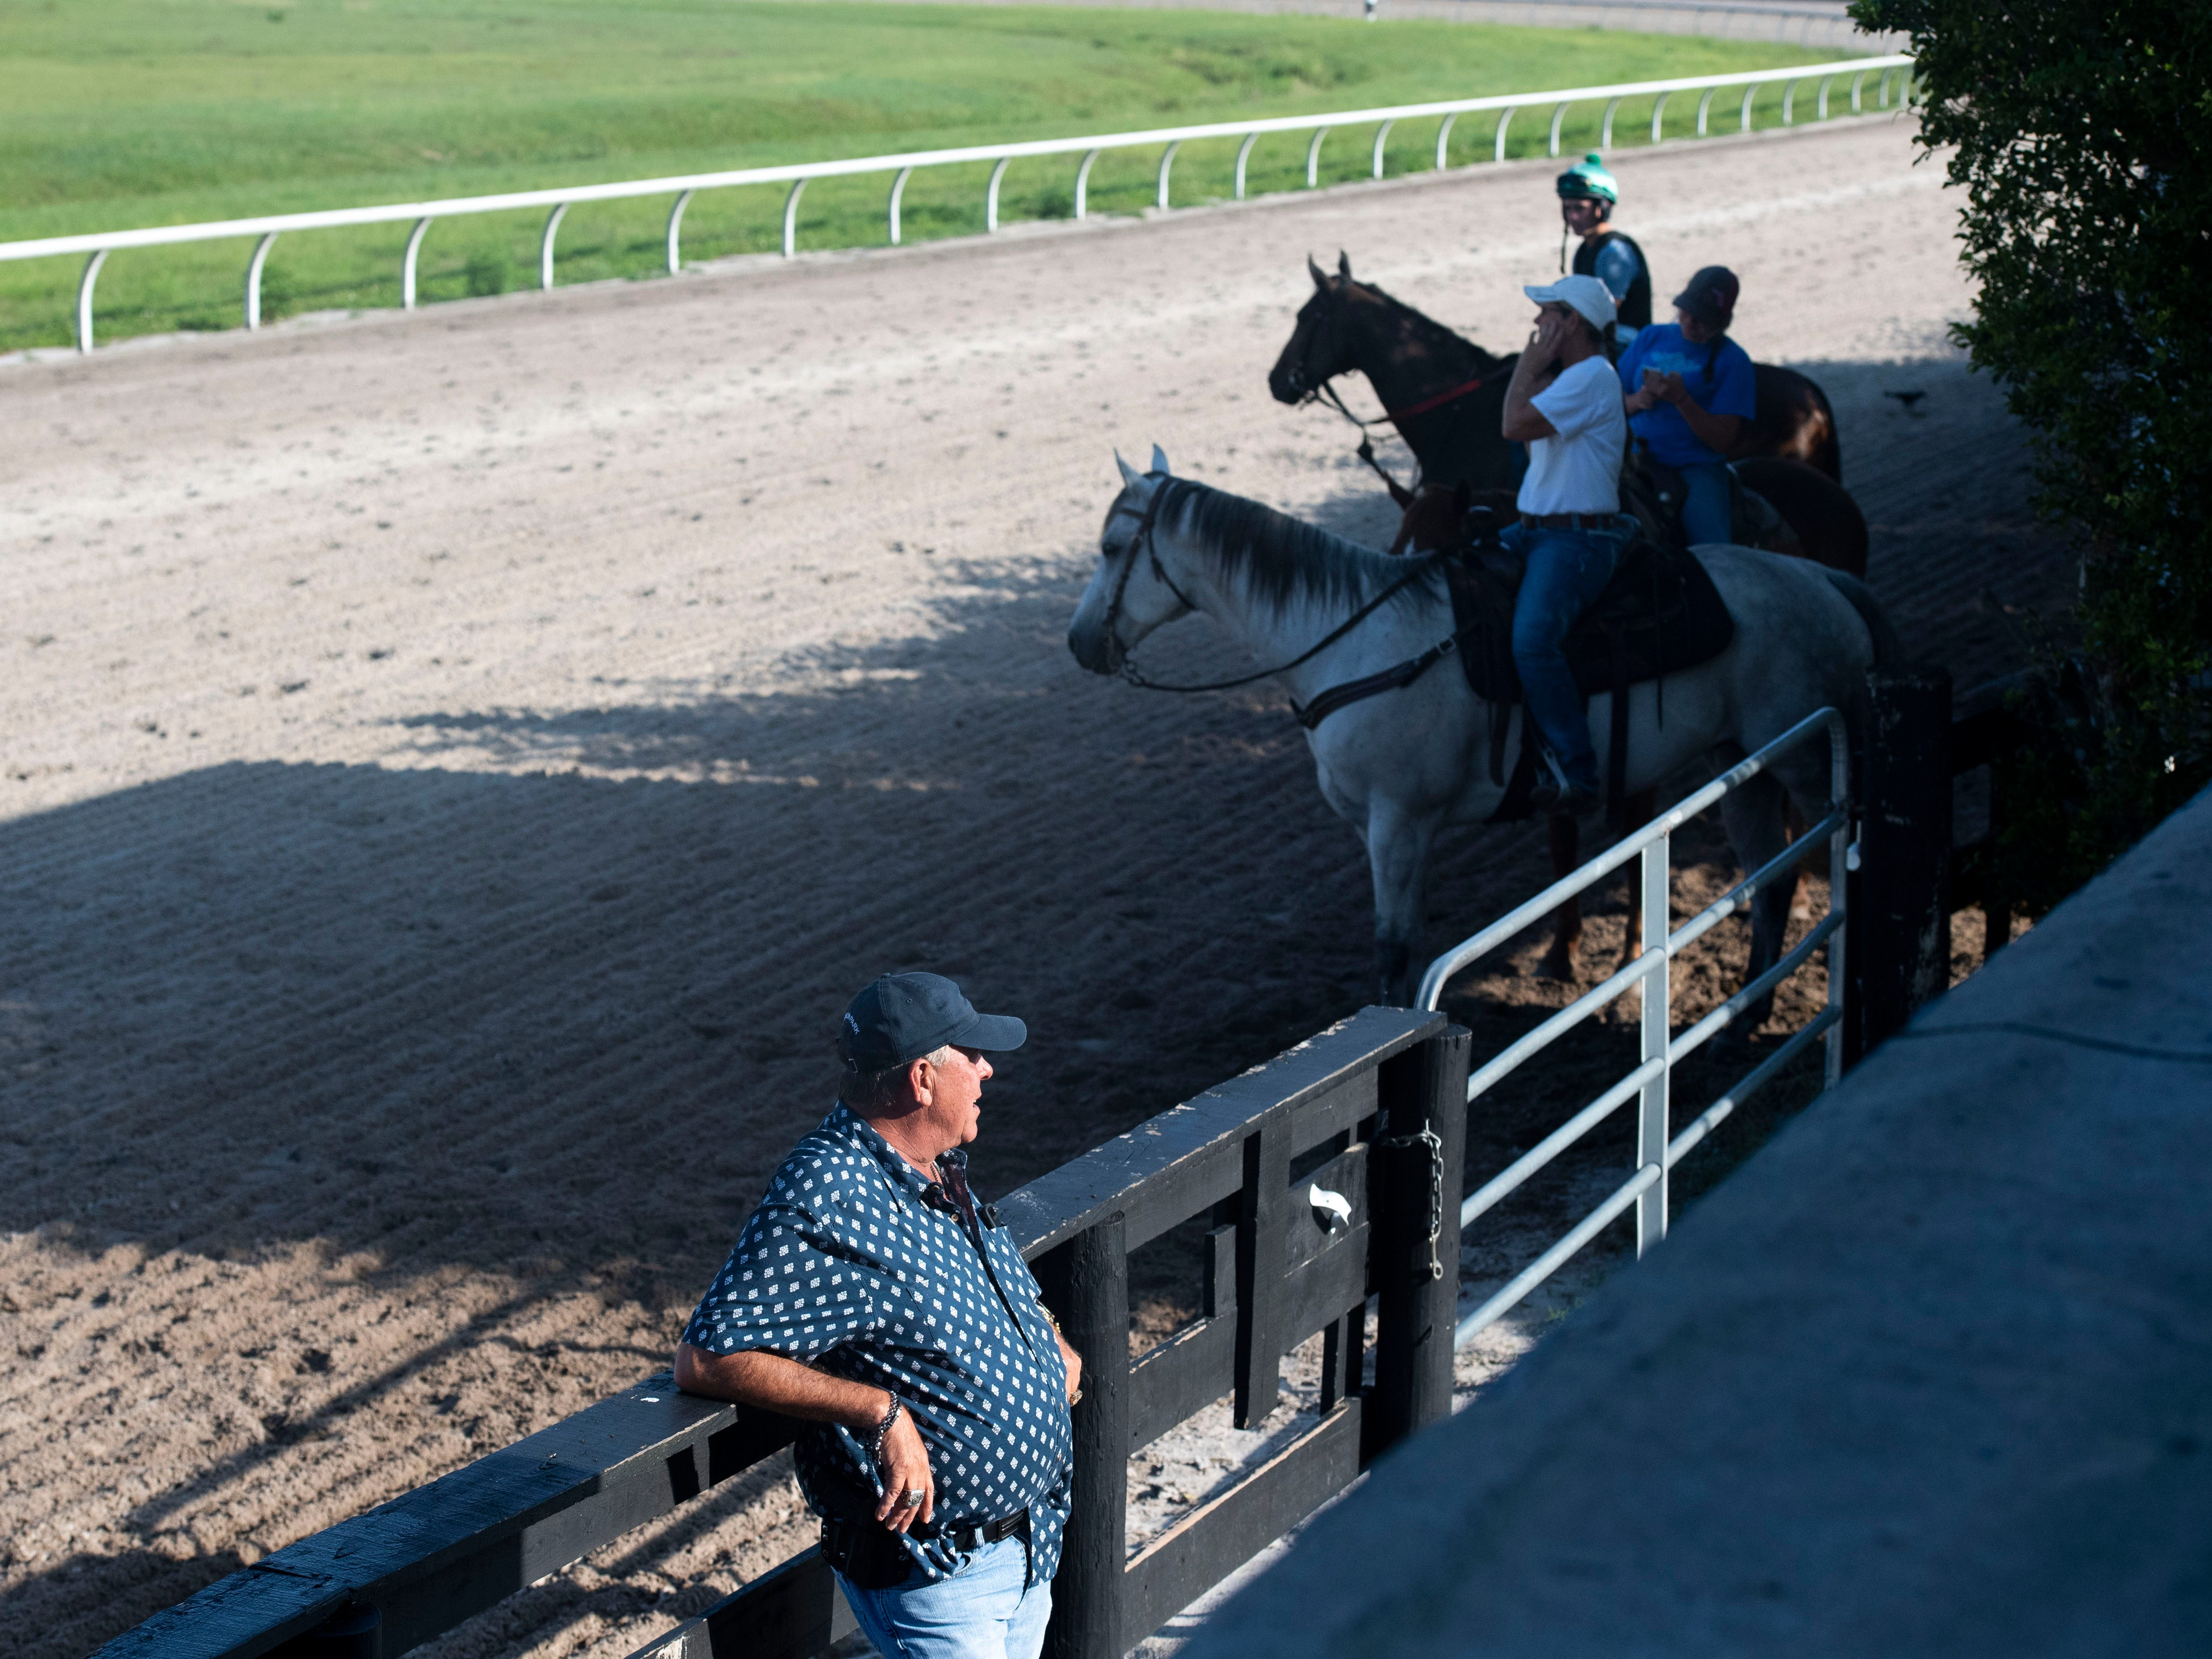 """We keep it elite. We keep it high end. The track is always good, the turf is always good,"" said Larry Kelly, Payson Park general manager, about the thoroughbred training facility in Indiantown. About 500 horses get trained on the property throughout the winter months, and this year's group included Country House, Code of Honor and Tacitus, the top three finishers of the 145th Kentucky Derby."